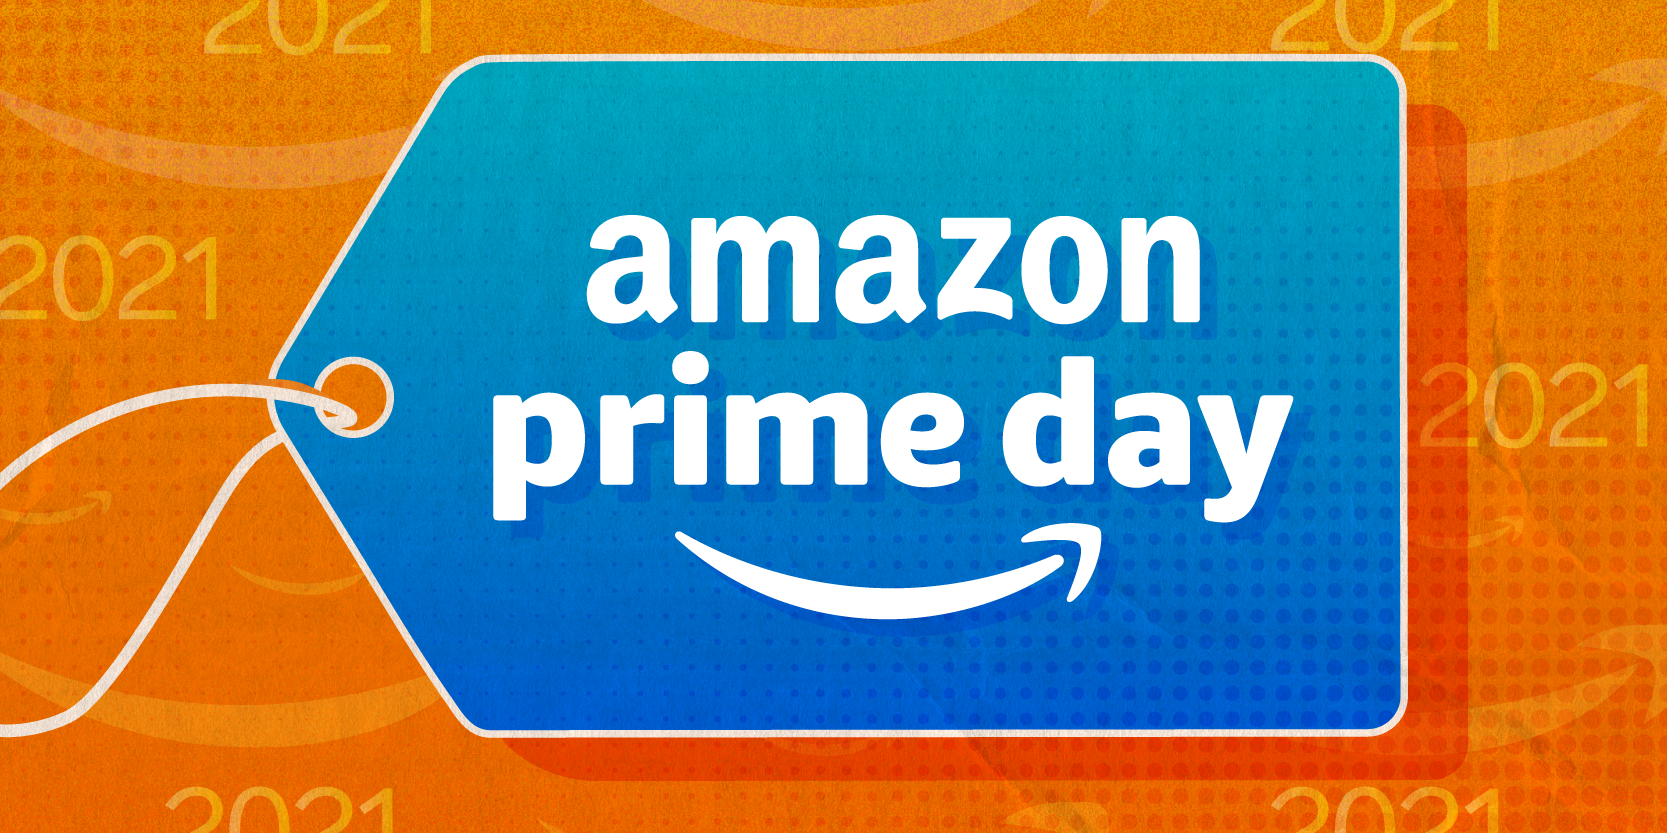 The best Amazon Prime Day 2021 gaming deals include the cheapest-ever Razer gaming laptop, massive Switch game deals, and more